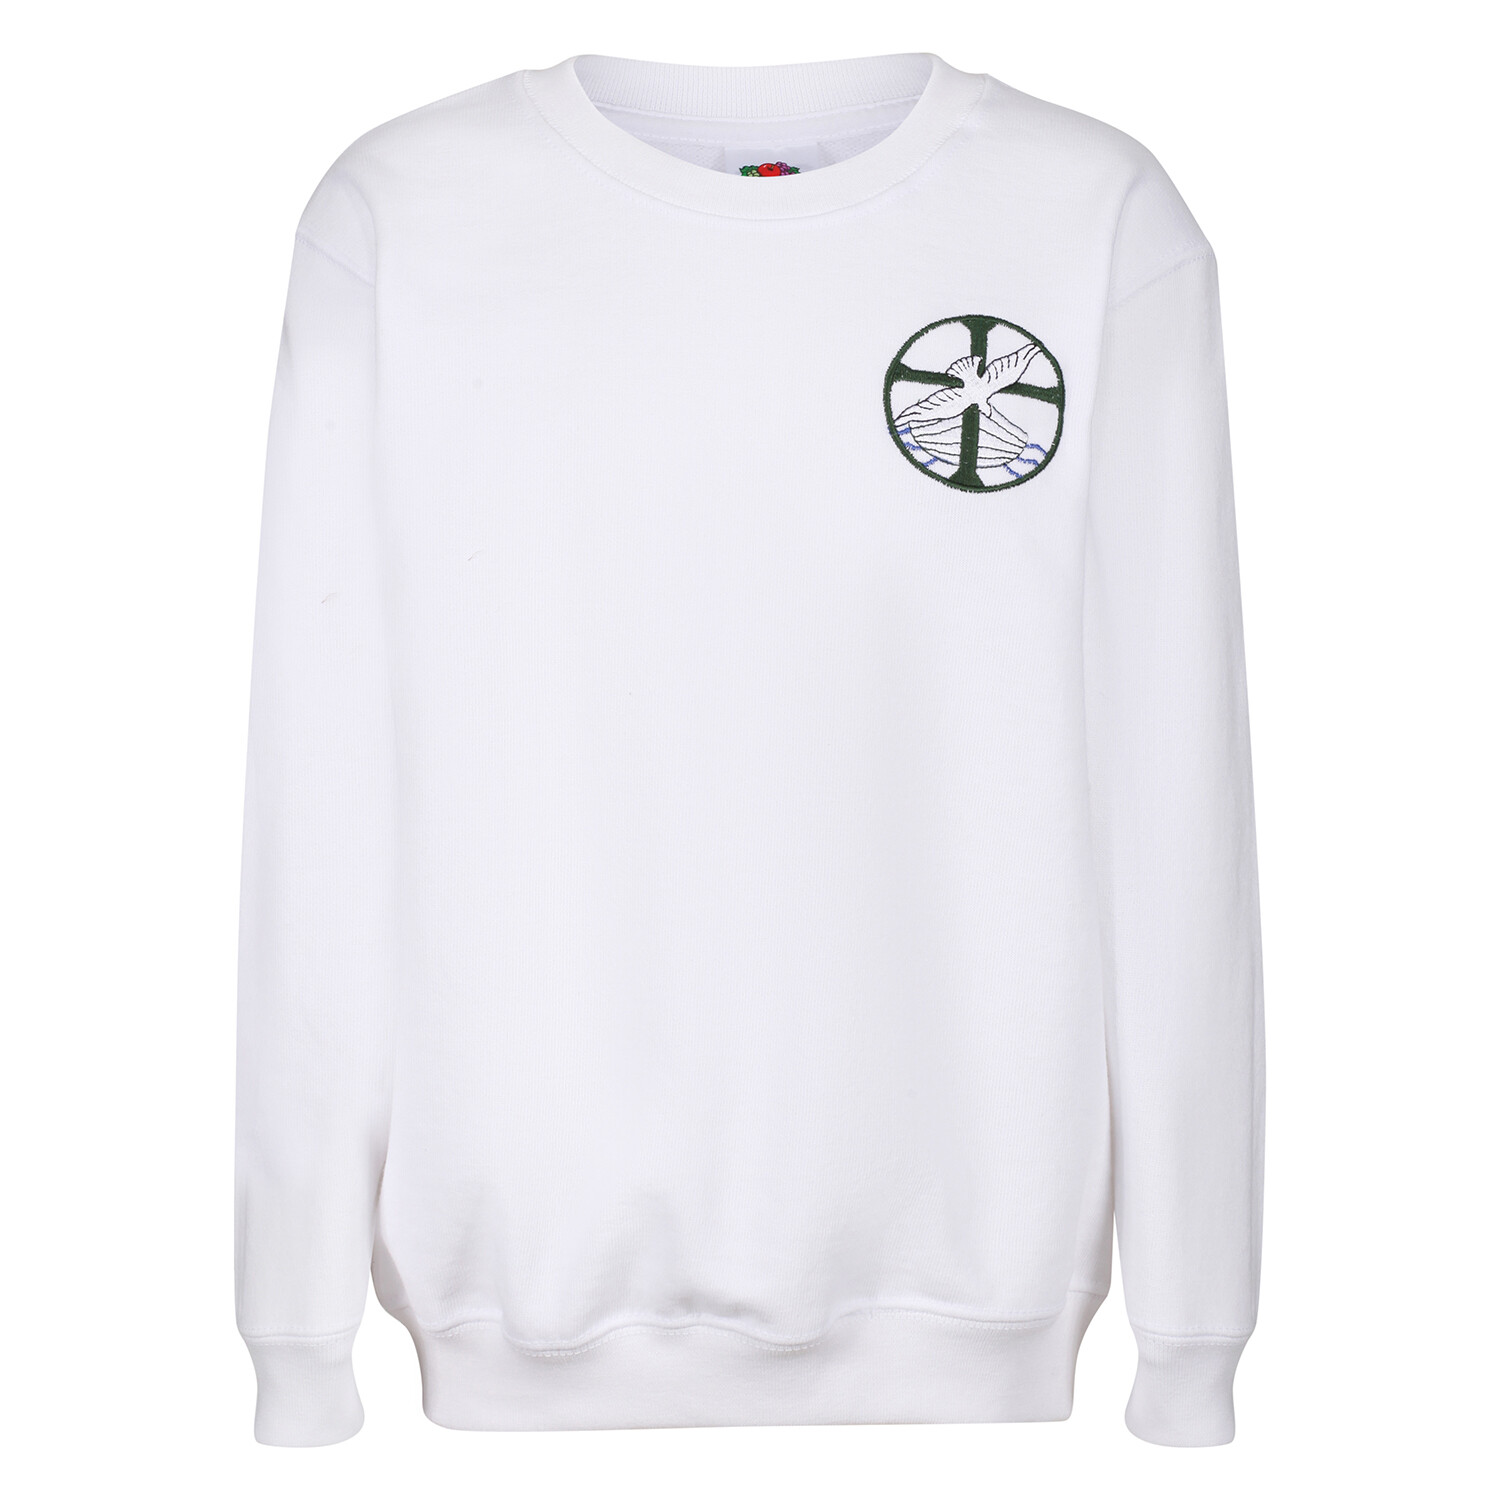 St Columba's Junior School Girls PE Sweatshirt in White (Girls Early Years-J3)